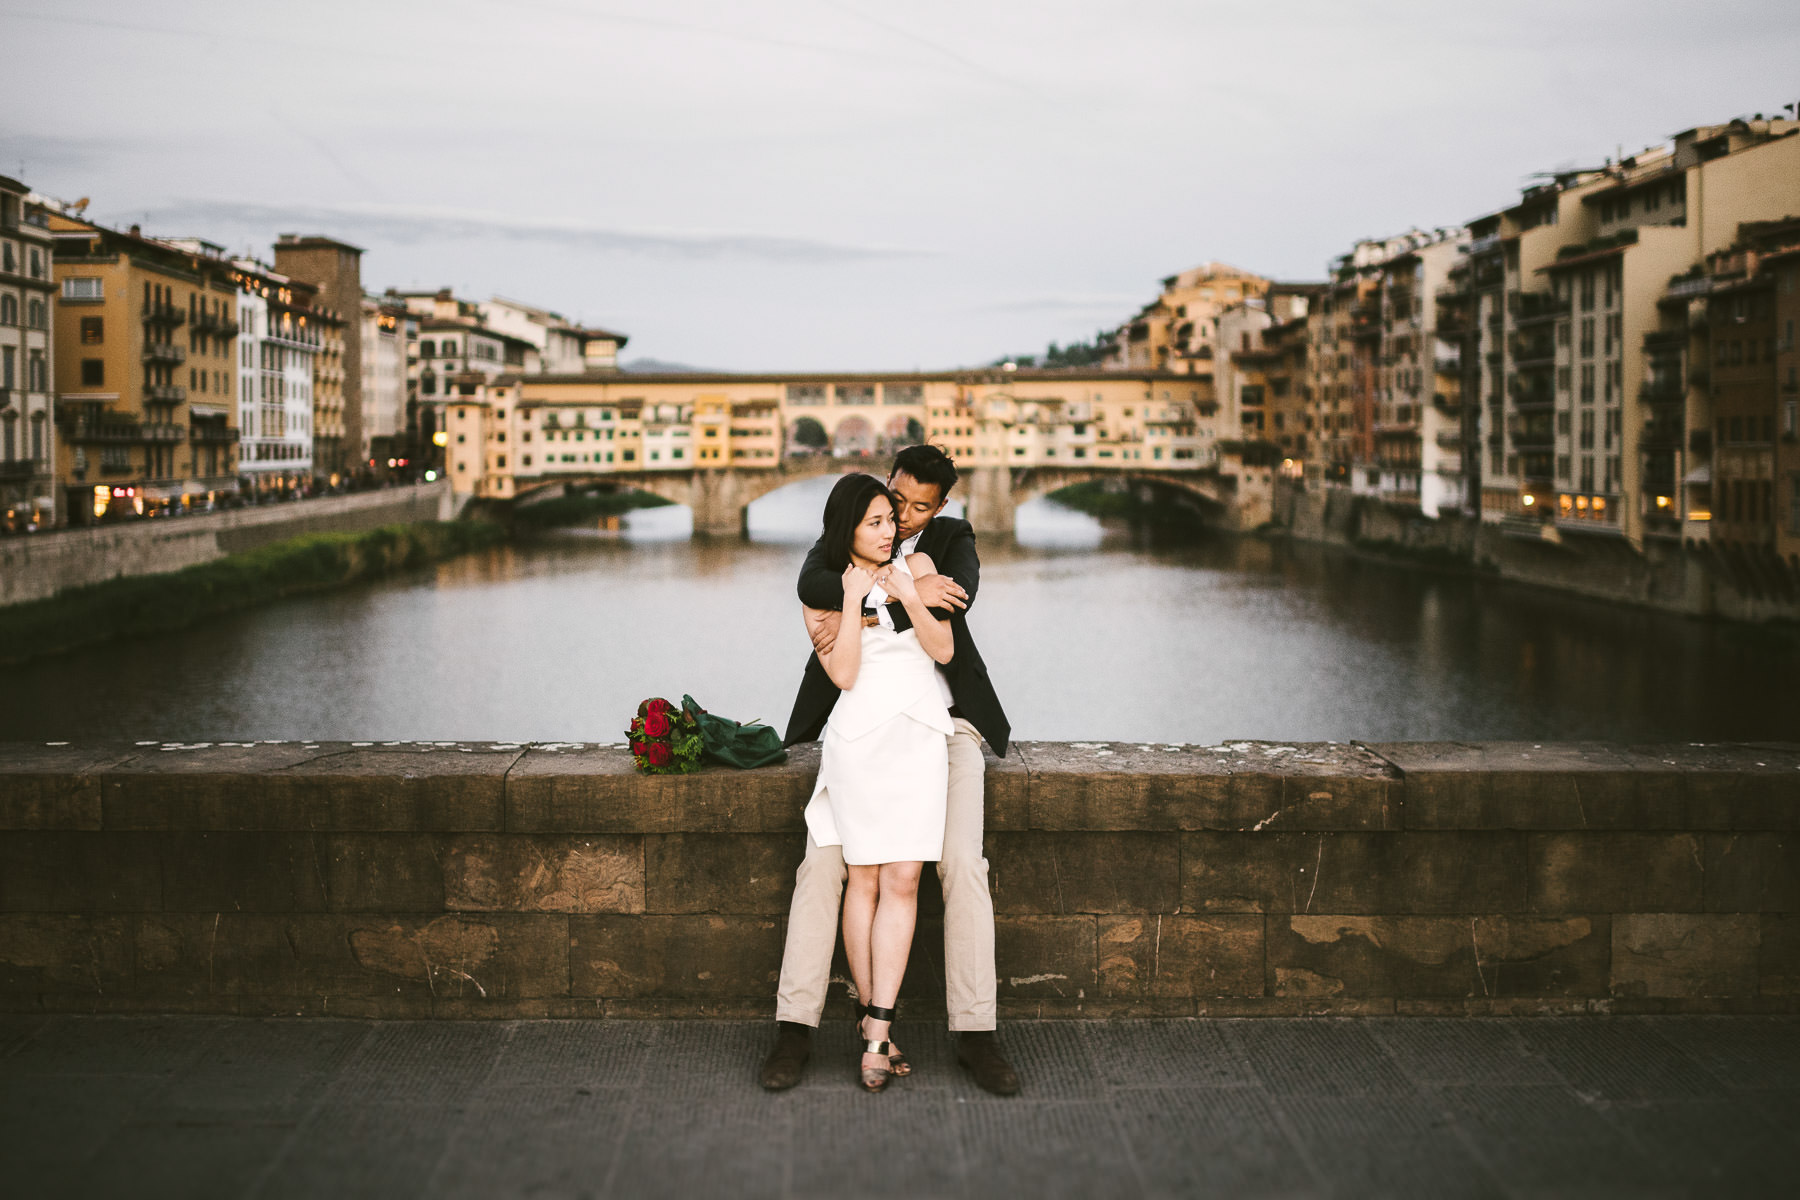 Surprise wedding proposal in Florence: the best spots